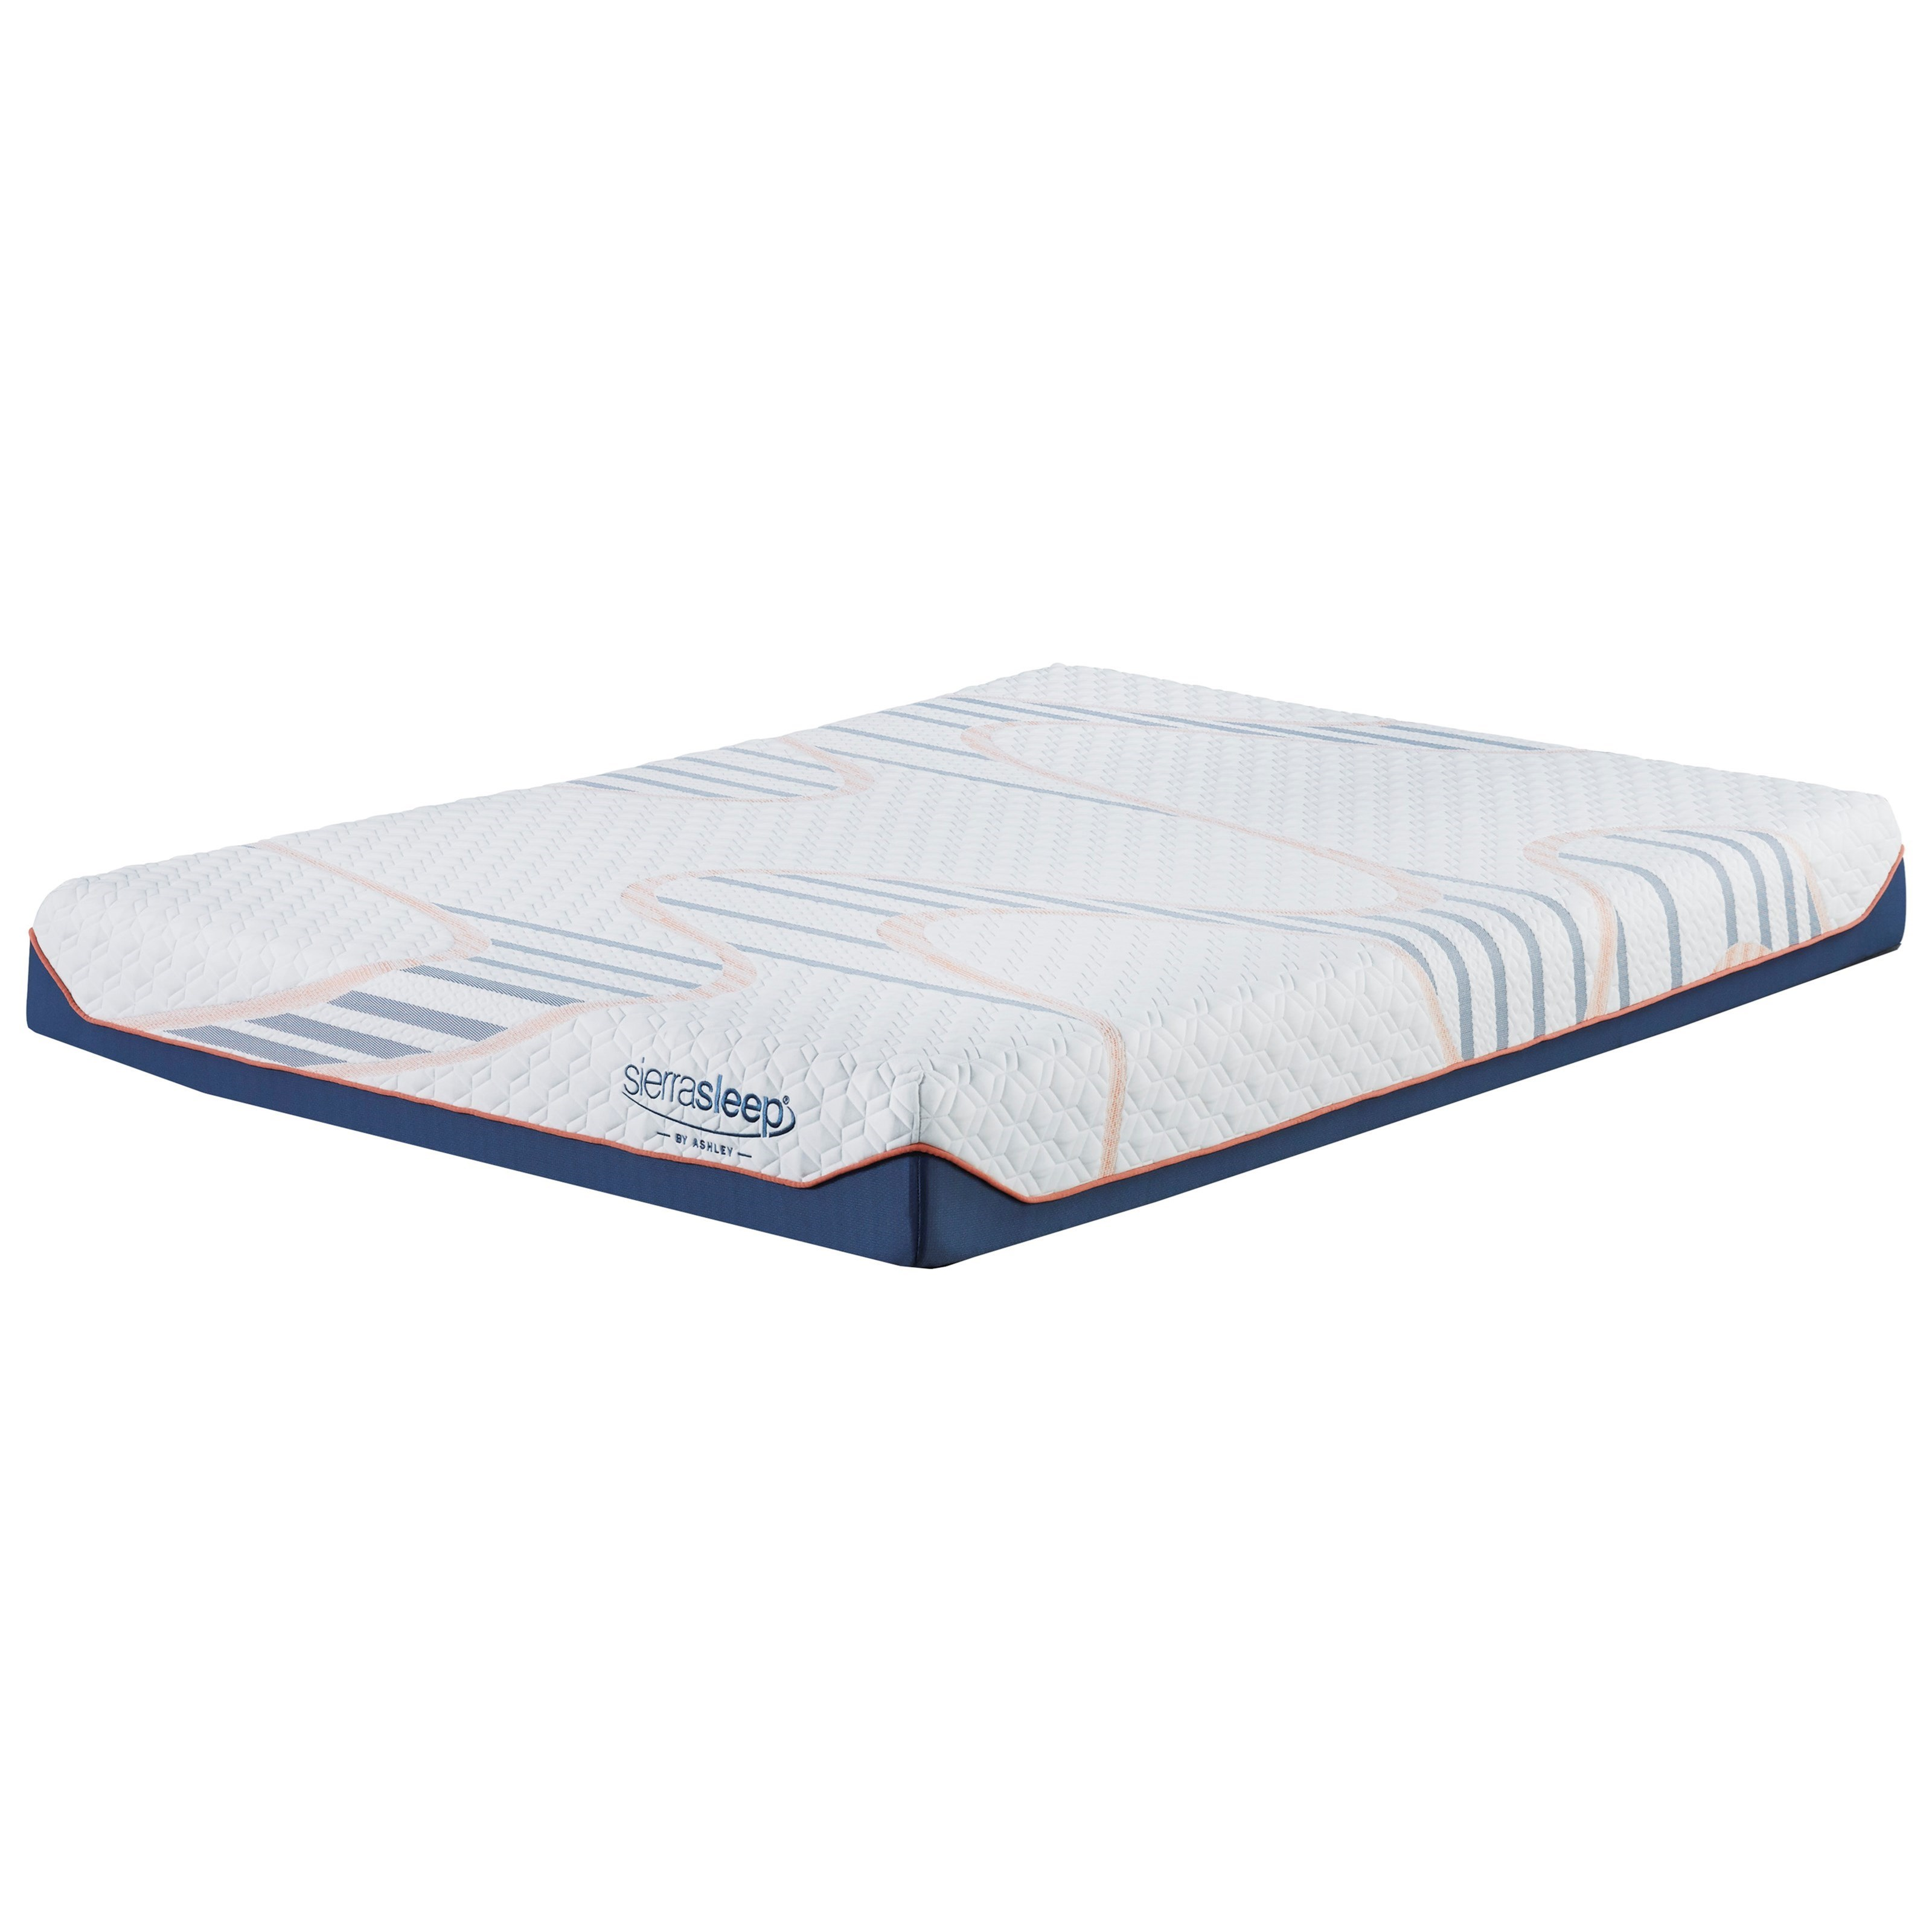 bed reviews foam elegant domoom beautiful post of set a review lovely therapedic base all related pillow memory restonic in mattress best magnolia dreamwell four